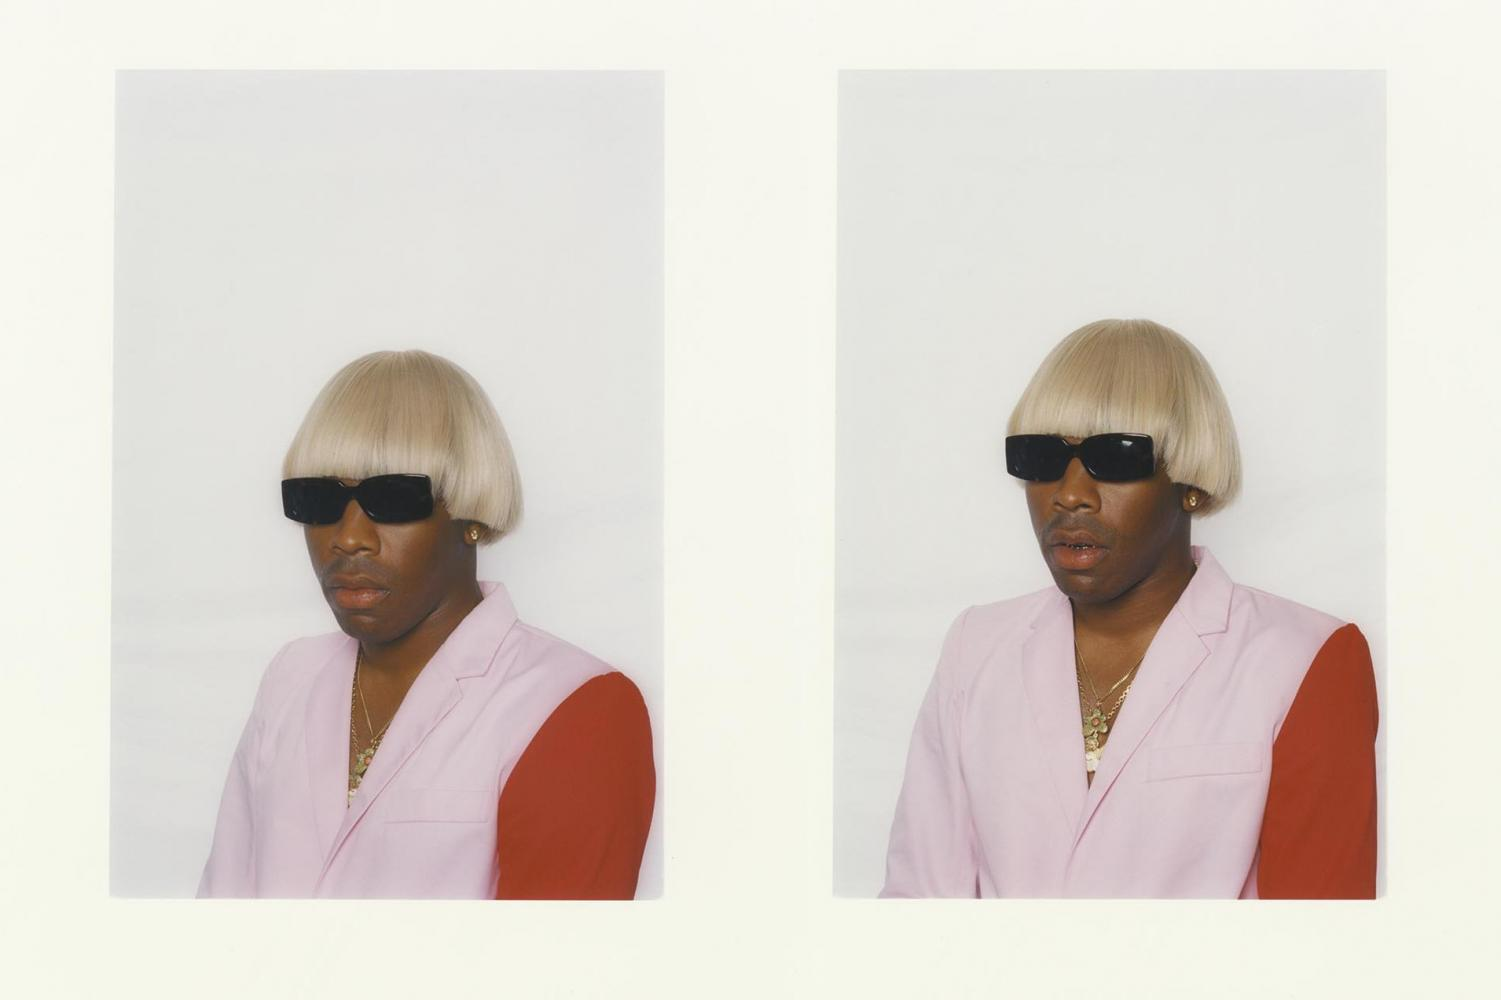 Tyler, The Creator sporting a new look before the release of IGOR